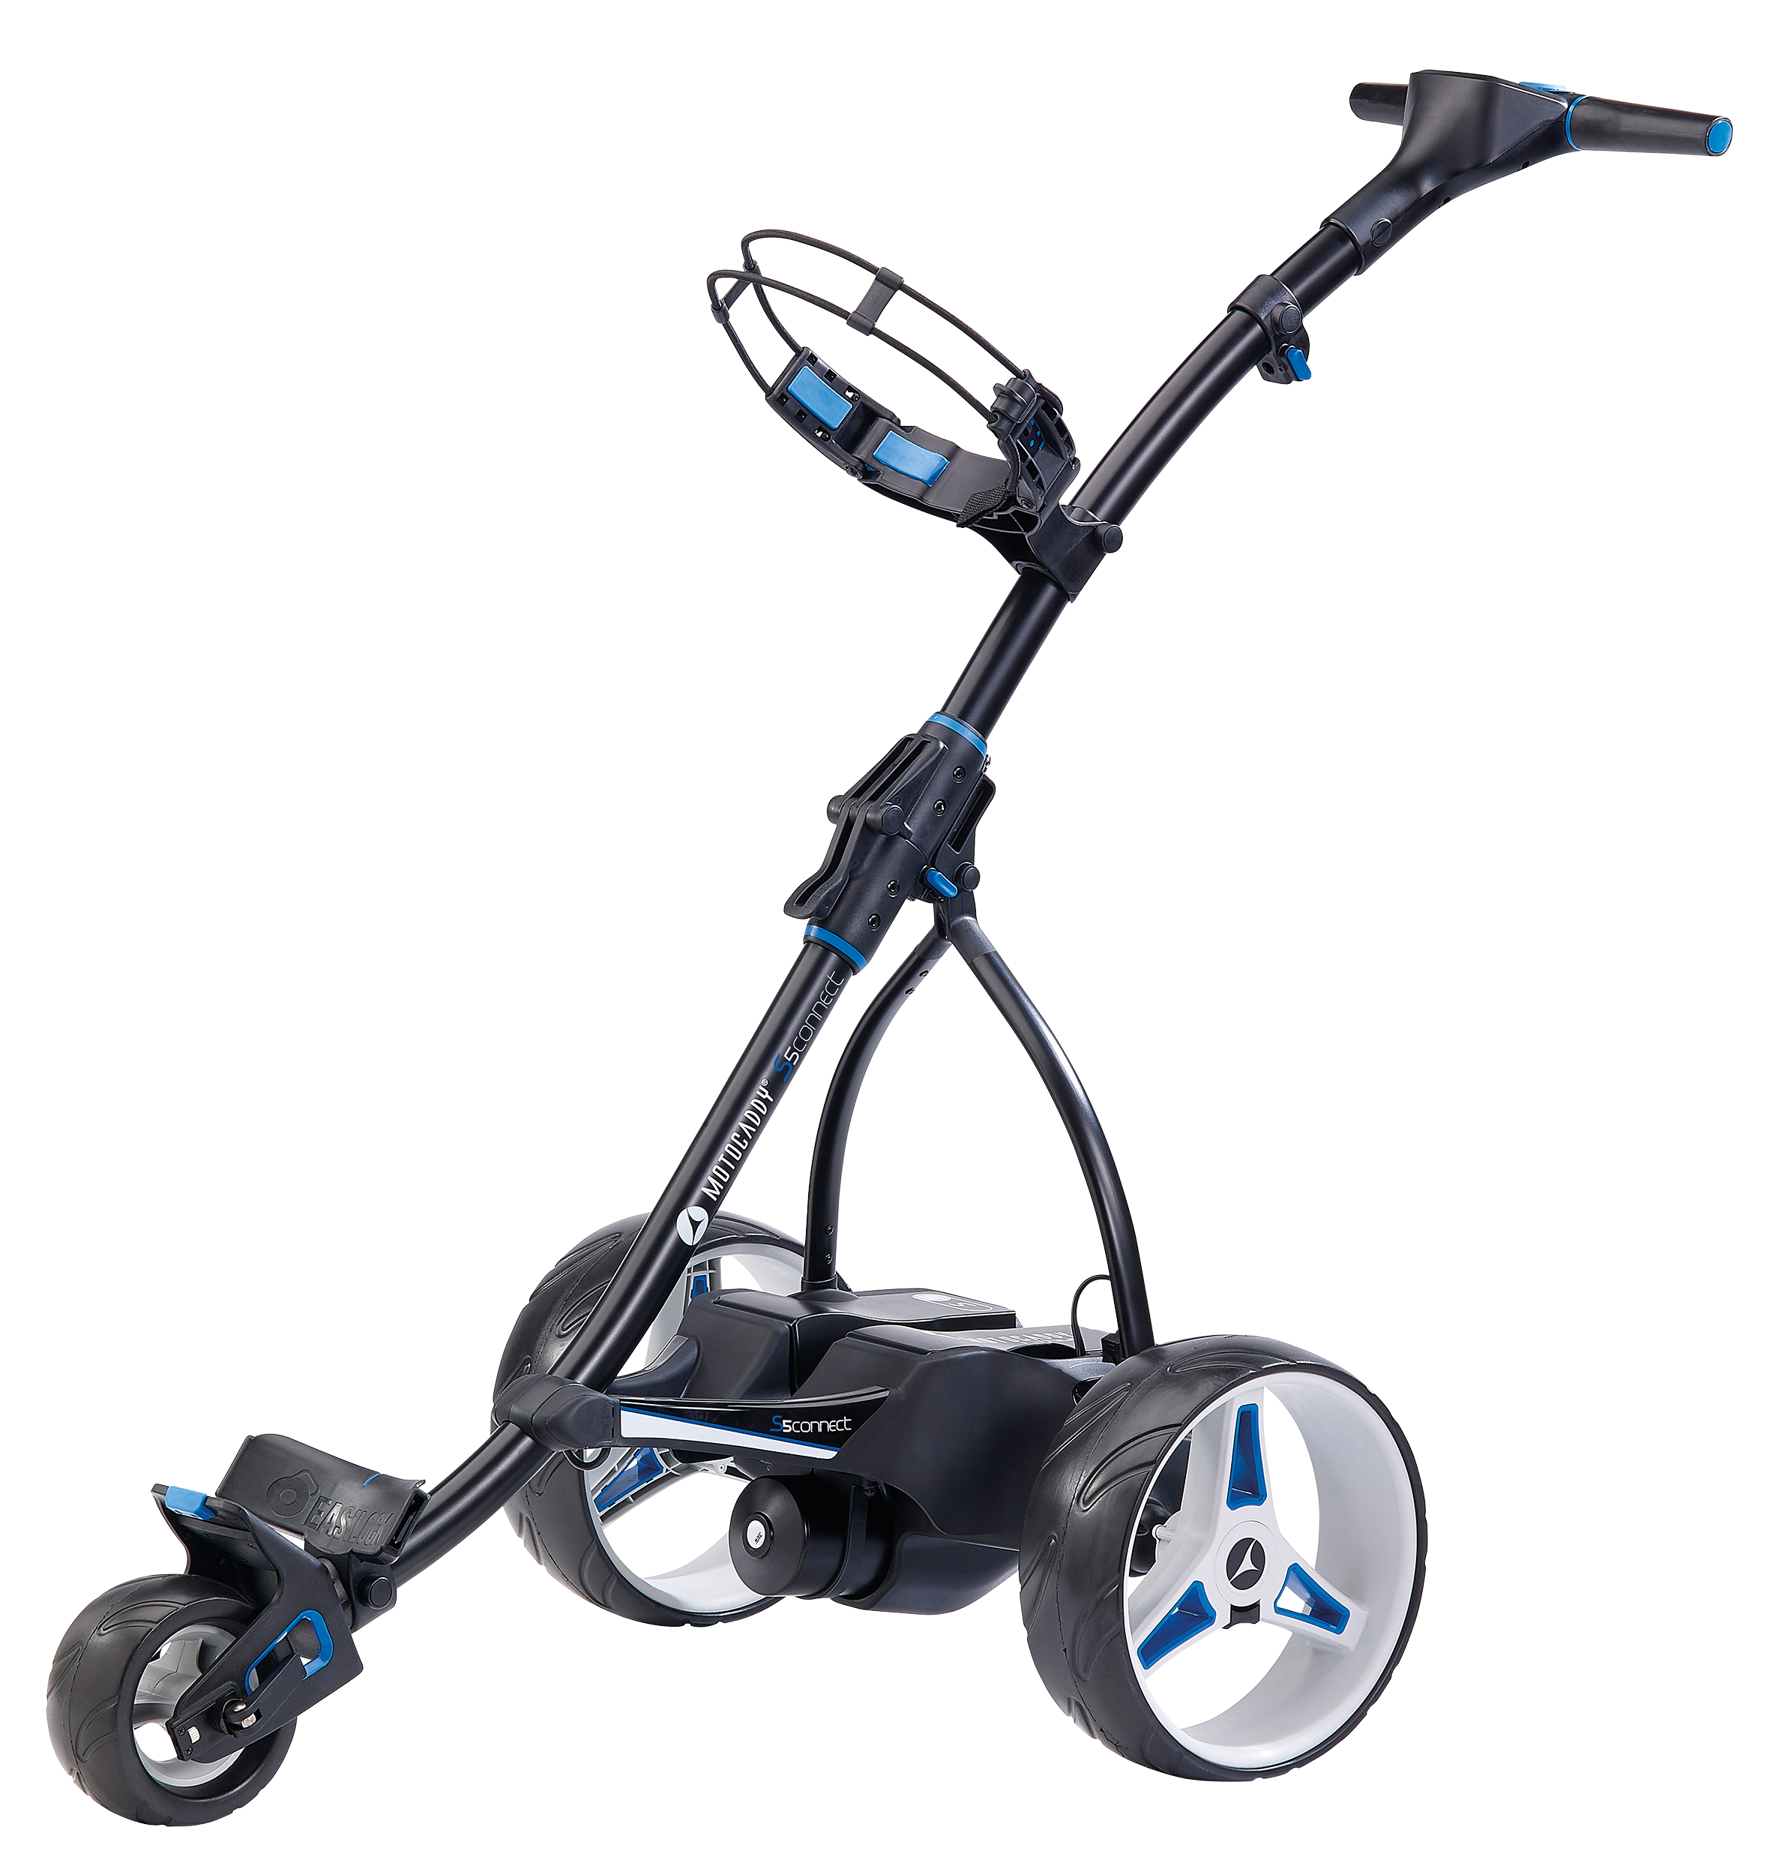 Carro de golf eléctrico Motocaddy S5 Connect